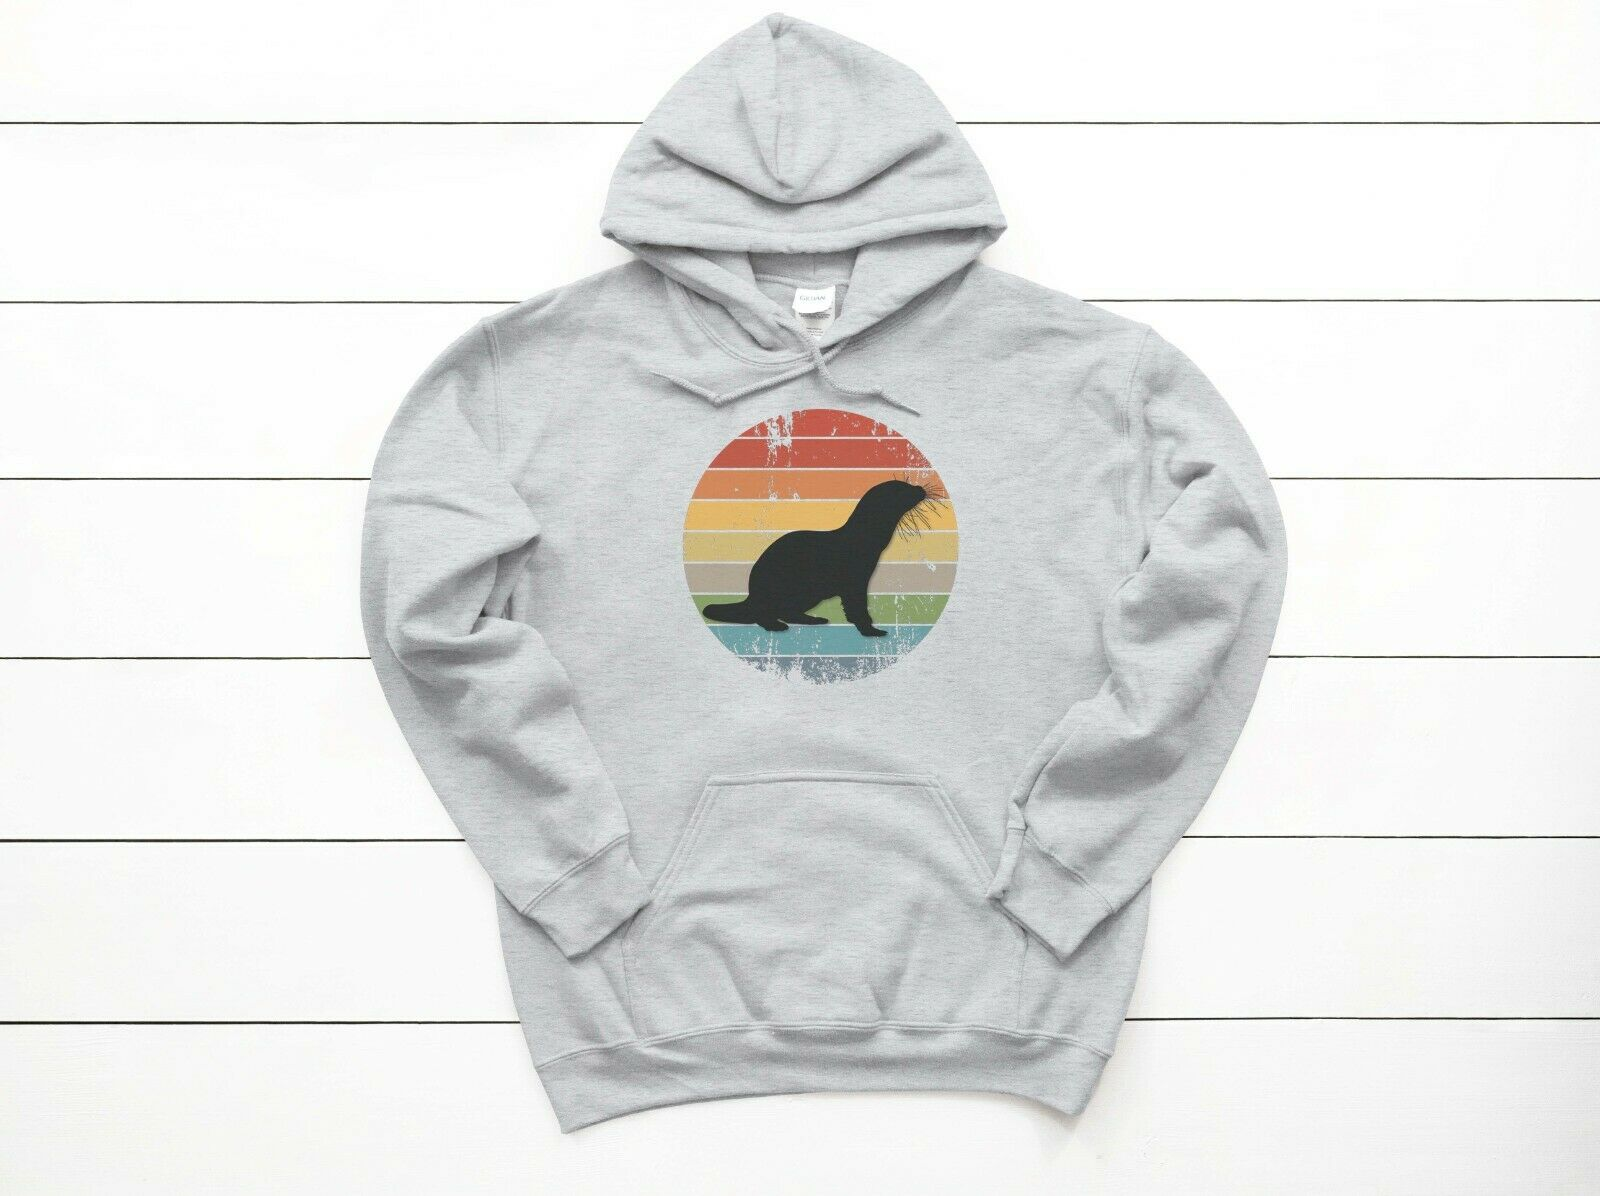 OTTER HOODIE, Otter Sunset, UNISEX,YOUTH & ADULT SIZES, RIVER OTTER HOODIE